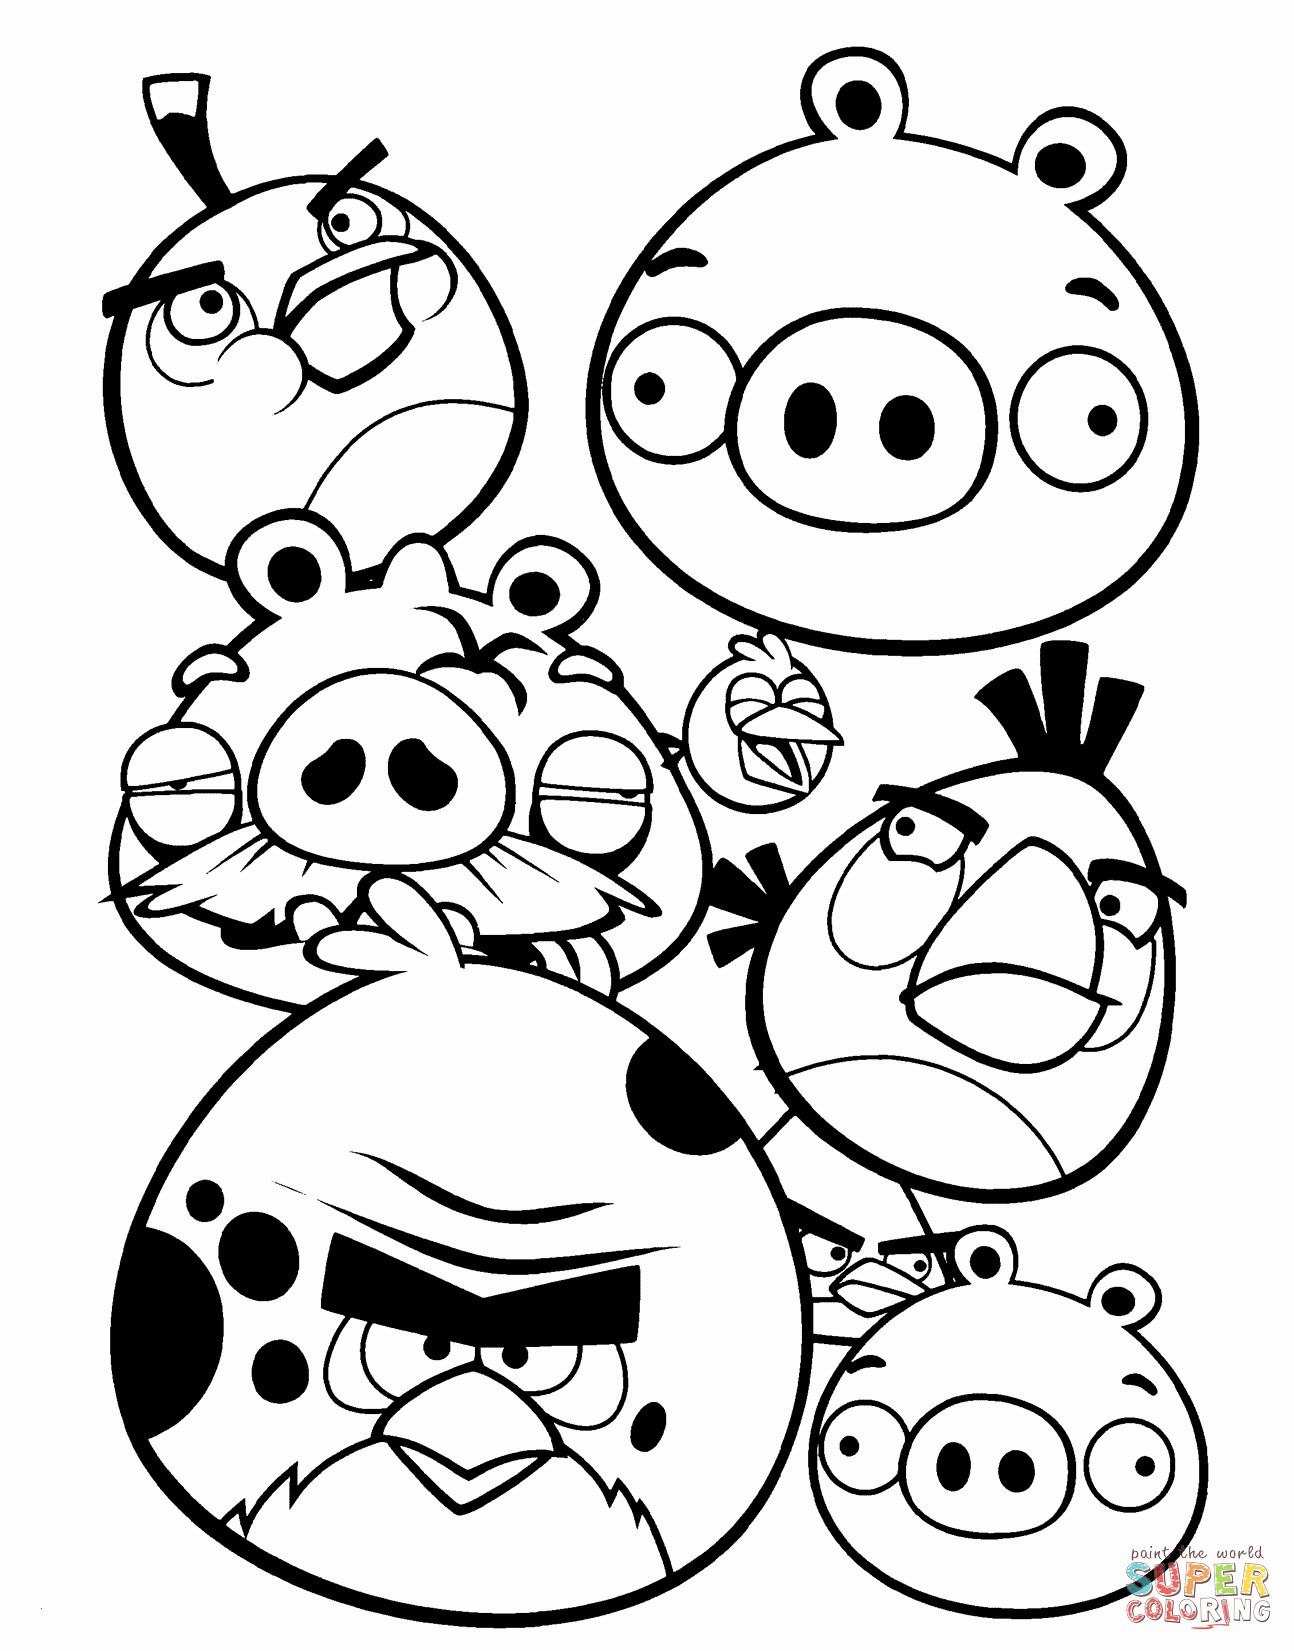 Angry Birds Coloring Pages for Learning Colors Angry Birds Coloring Pages for Learning Colors